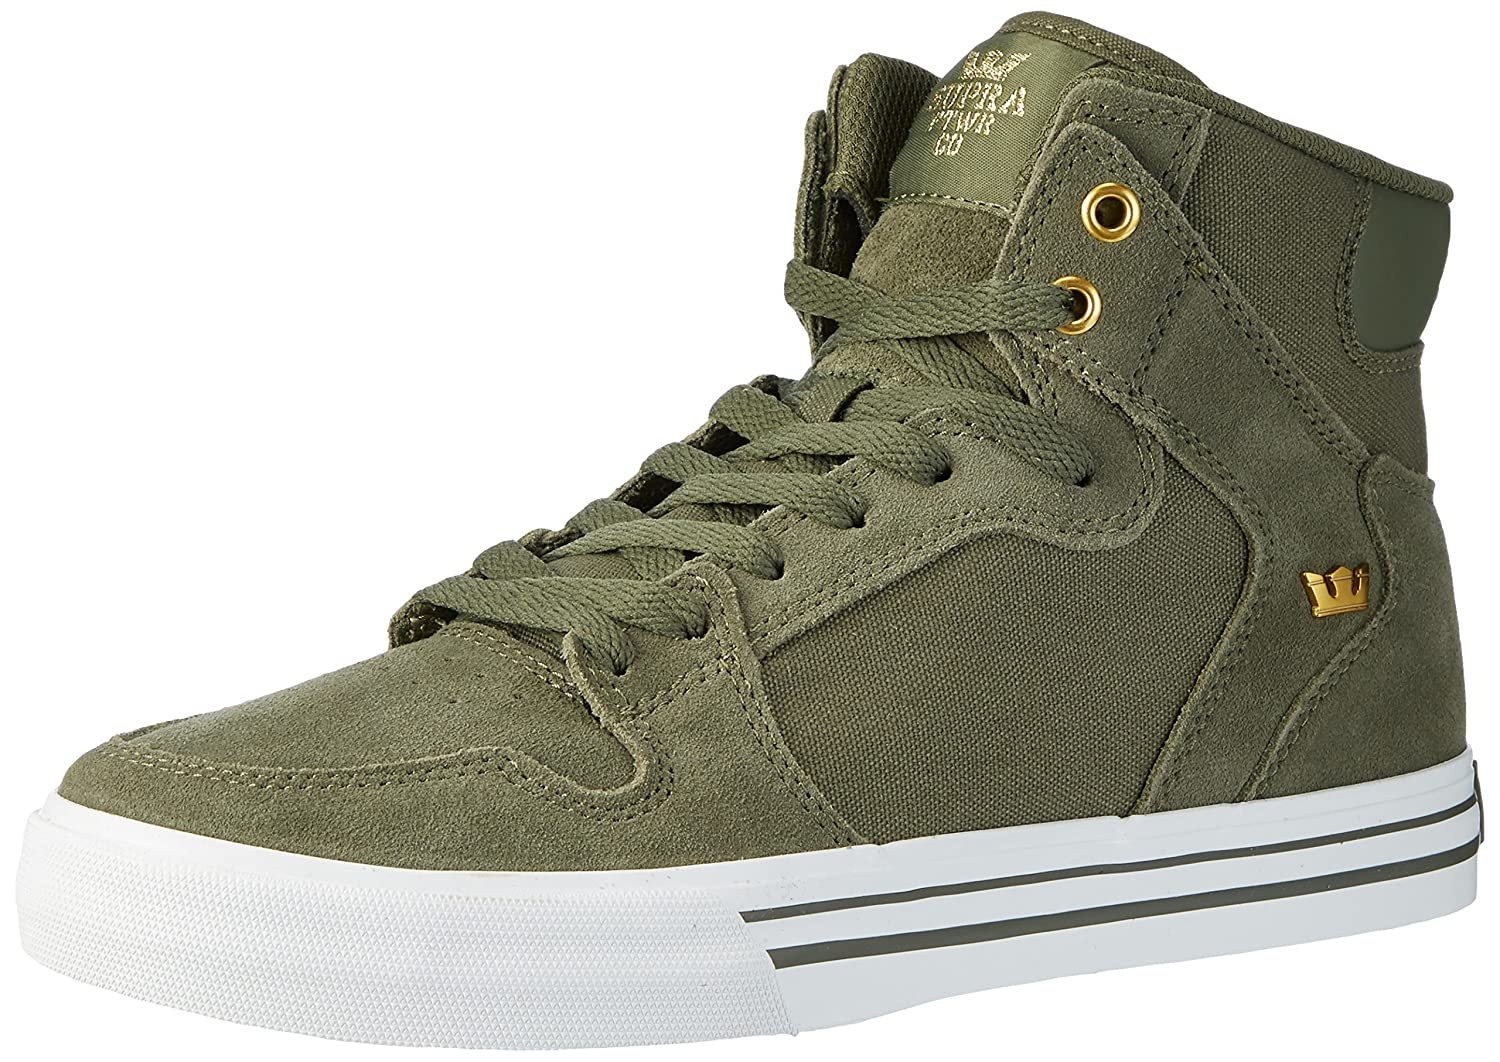 Supra Vaider LC Sneaker Medium / 10 C/D US Women / 8.5 D(M) US Men|Olive/White